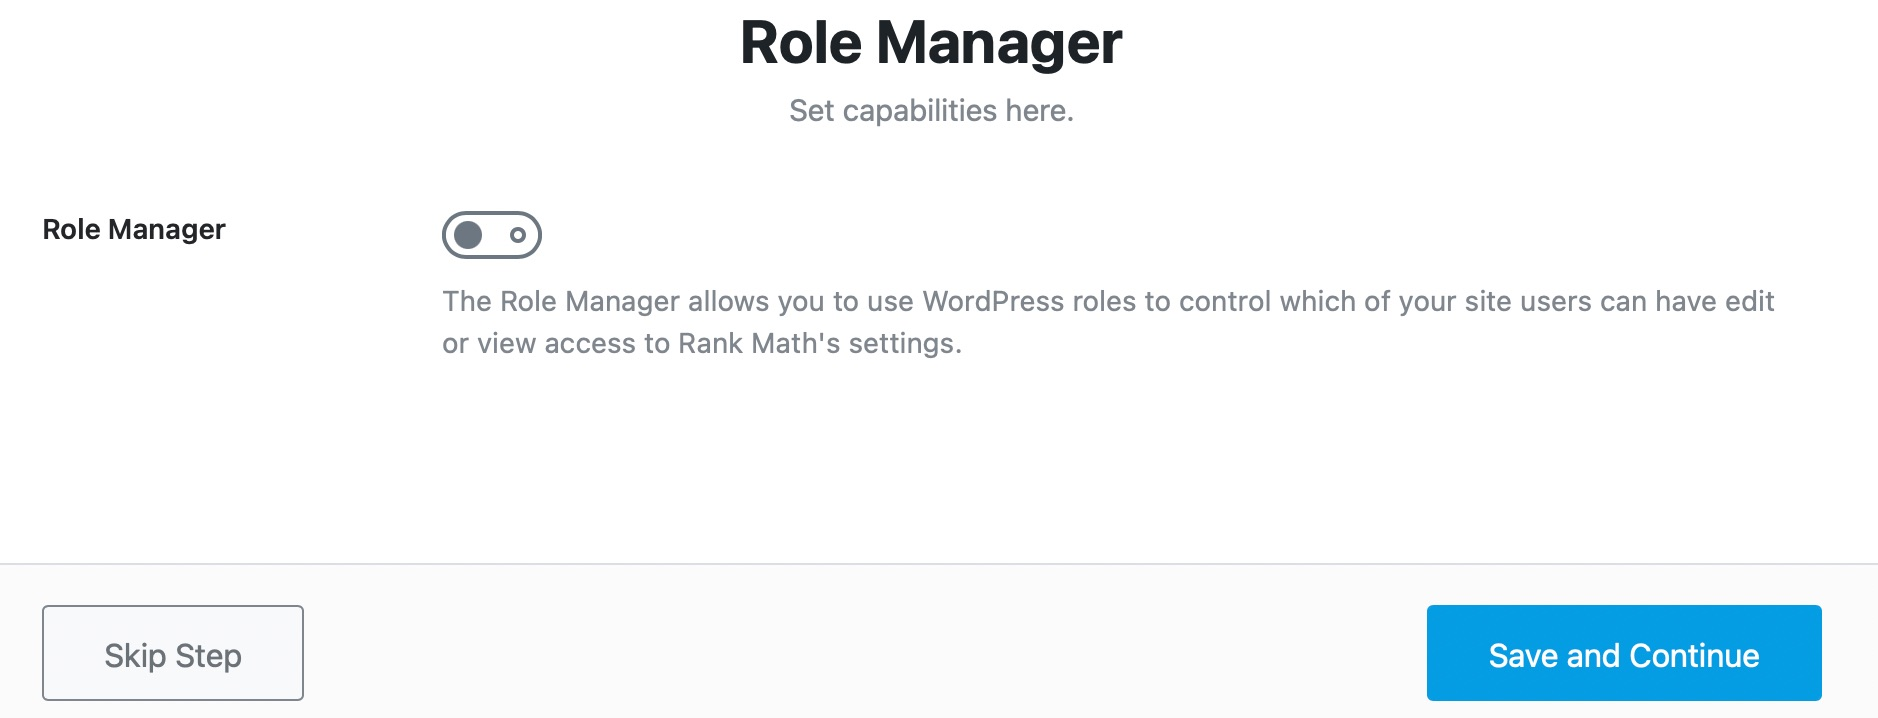 Role Manager Settings In Rank Math